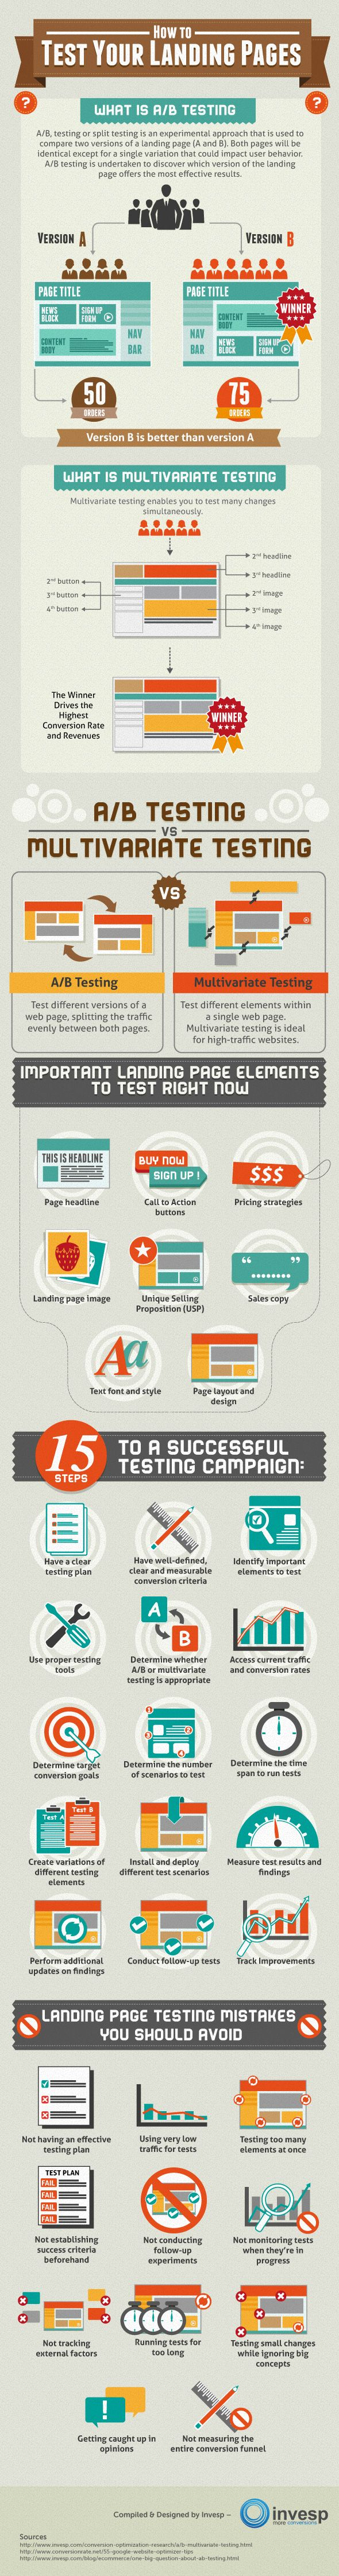 How to Test Your Landing Pages #Infographic